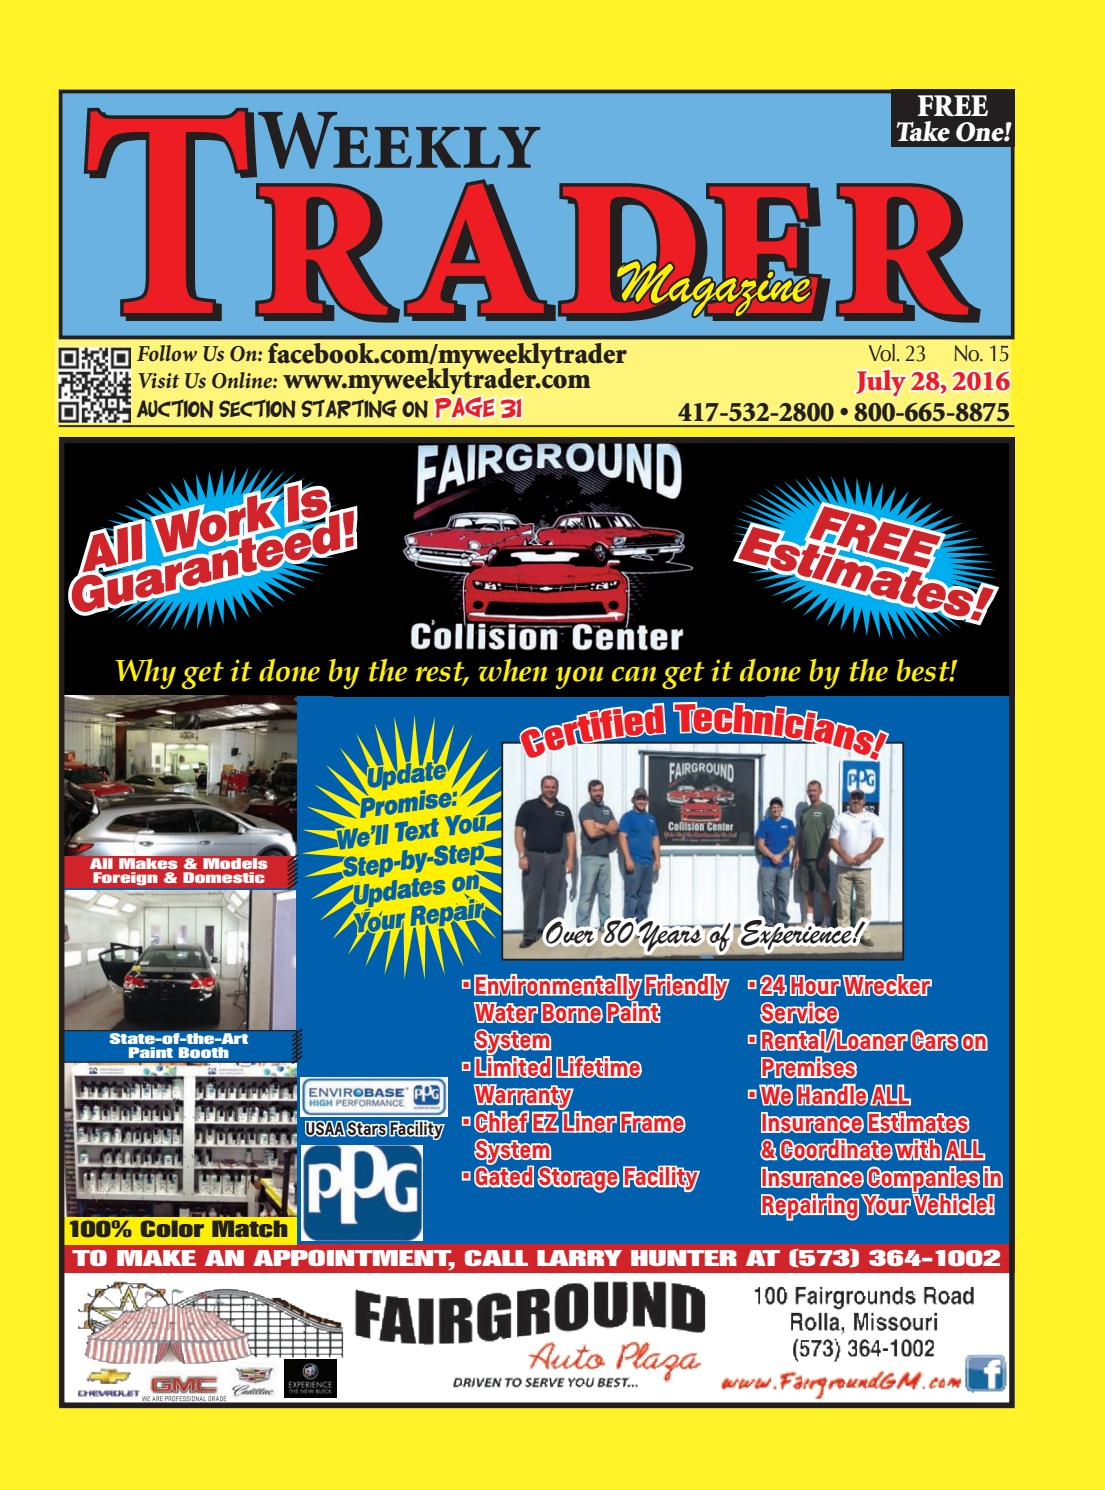 Weekly Trader July 28, 2016 by Weekly Trader - issuu